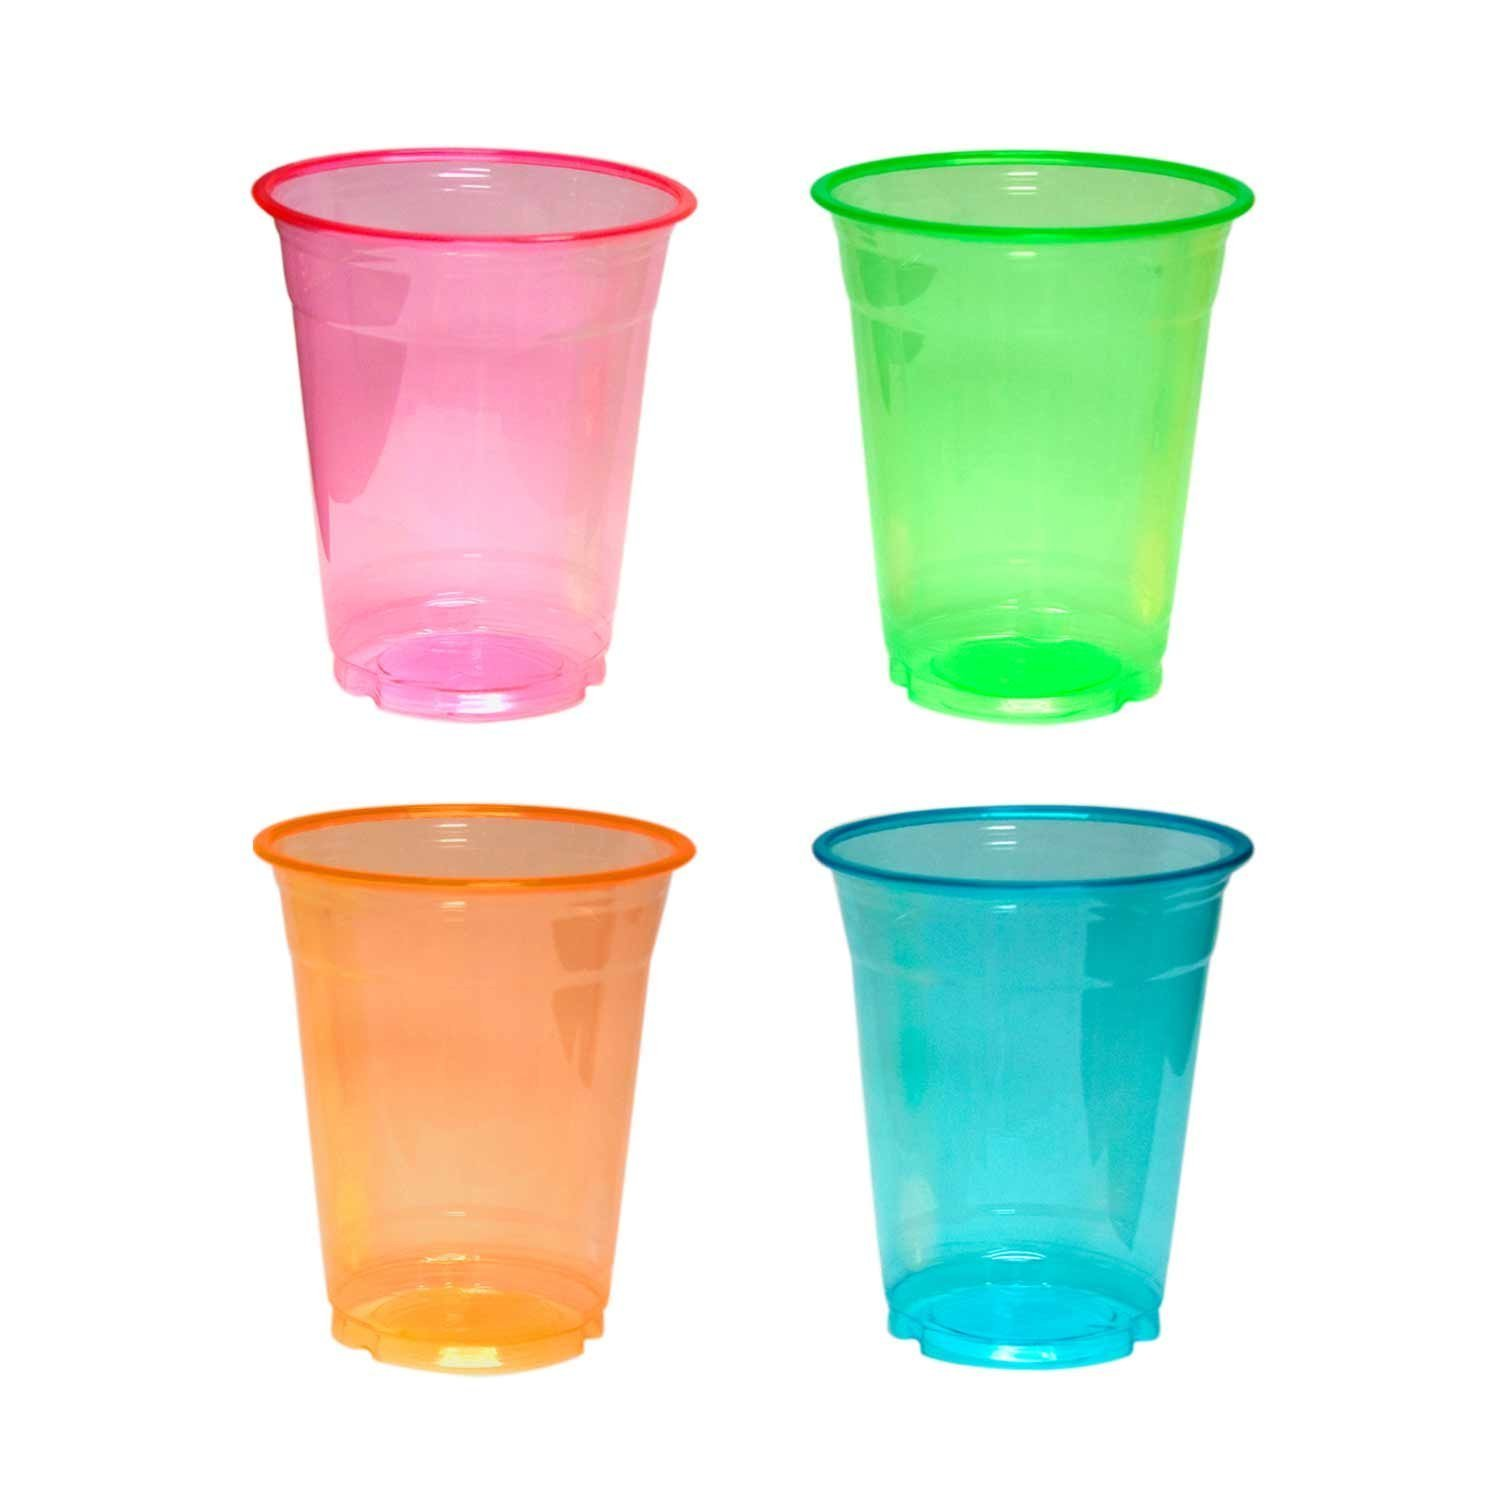 Party Essentials N162090 20 Count Soft Plastic Party Cups/Pint Glasses, 16 oz, Neon